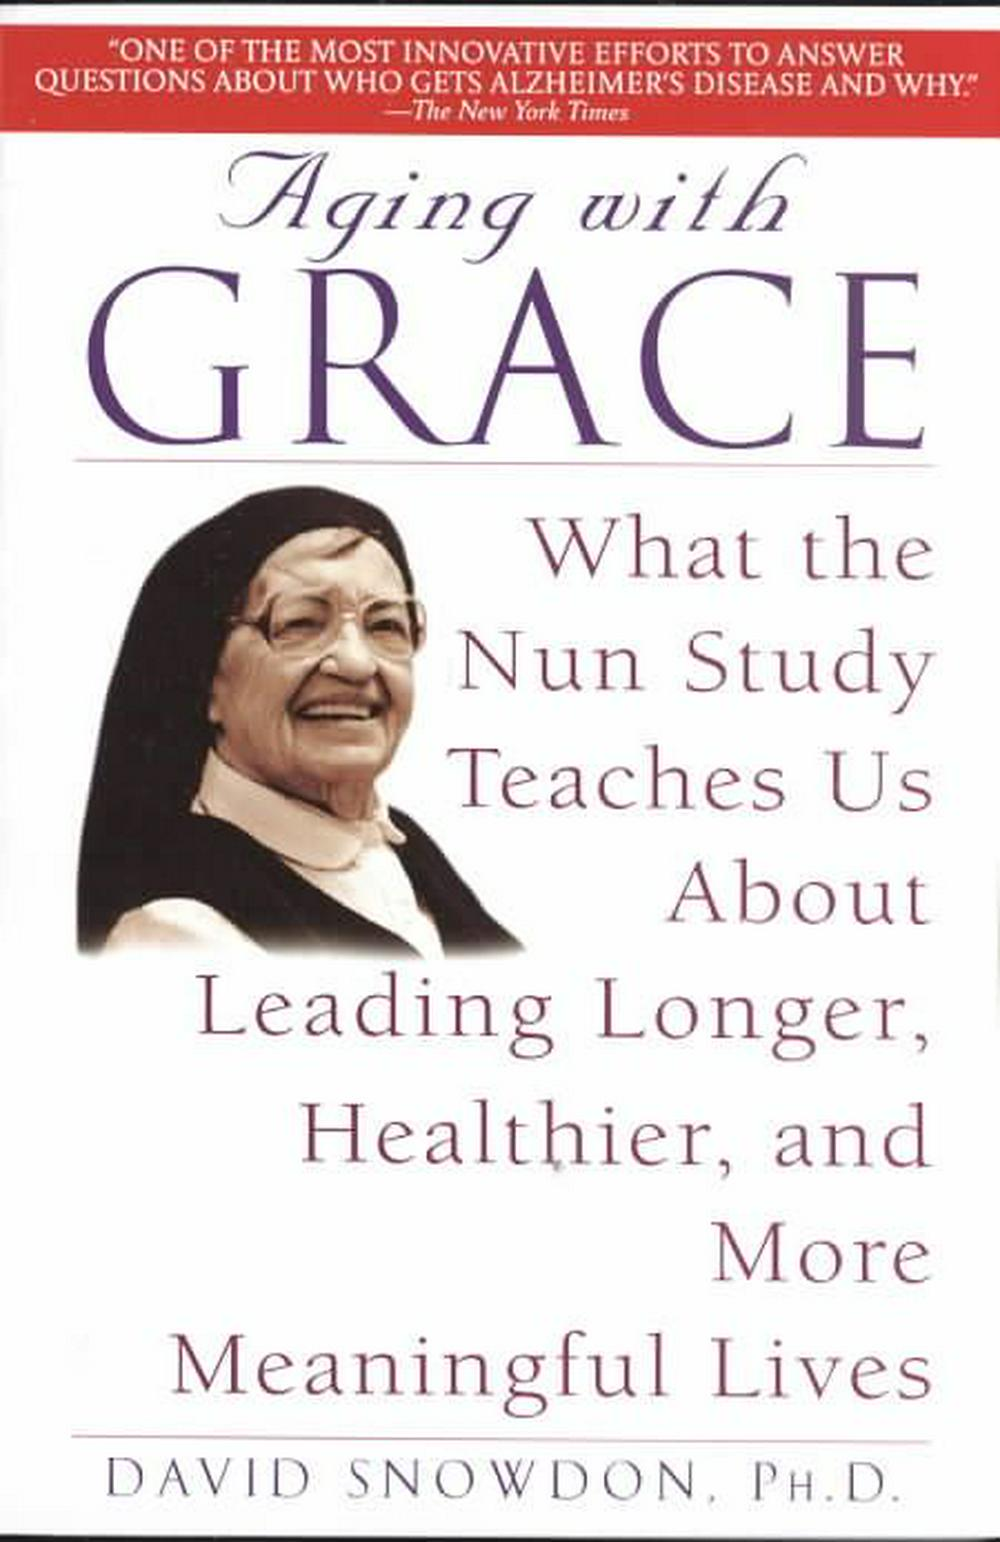 Aging with Grace by David Snowdon, ISBN: 9780553380927